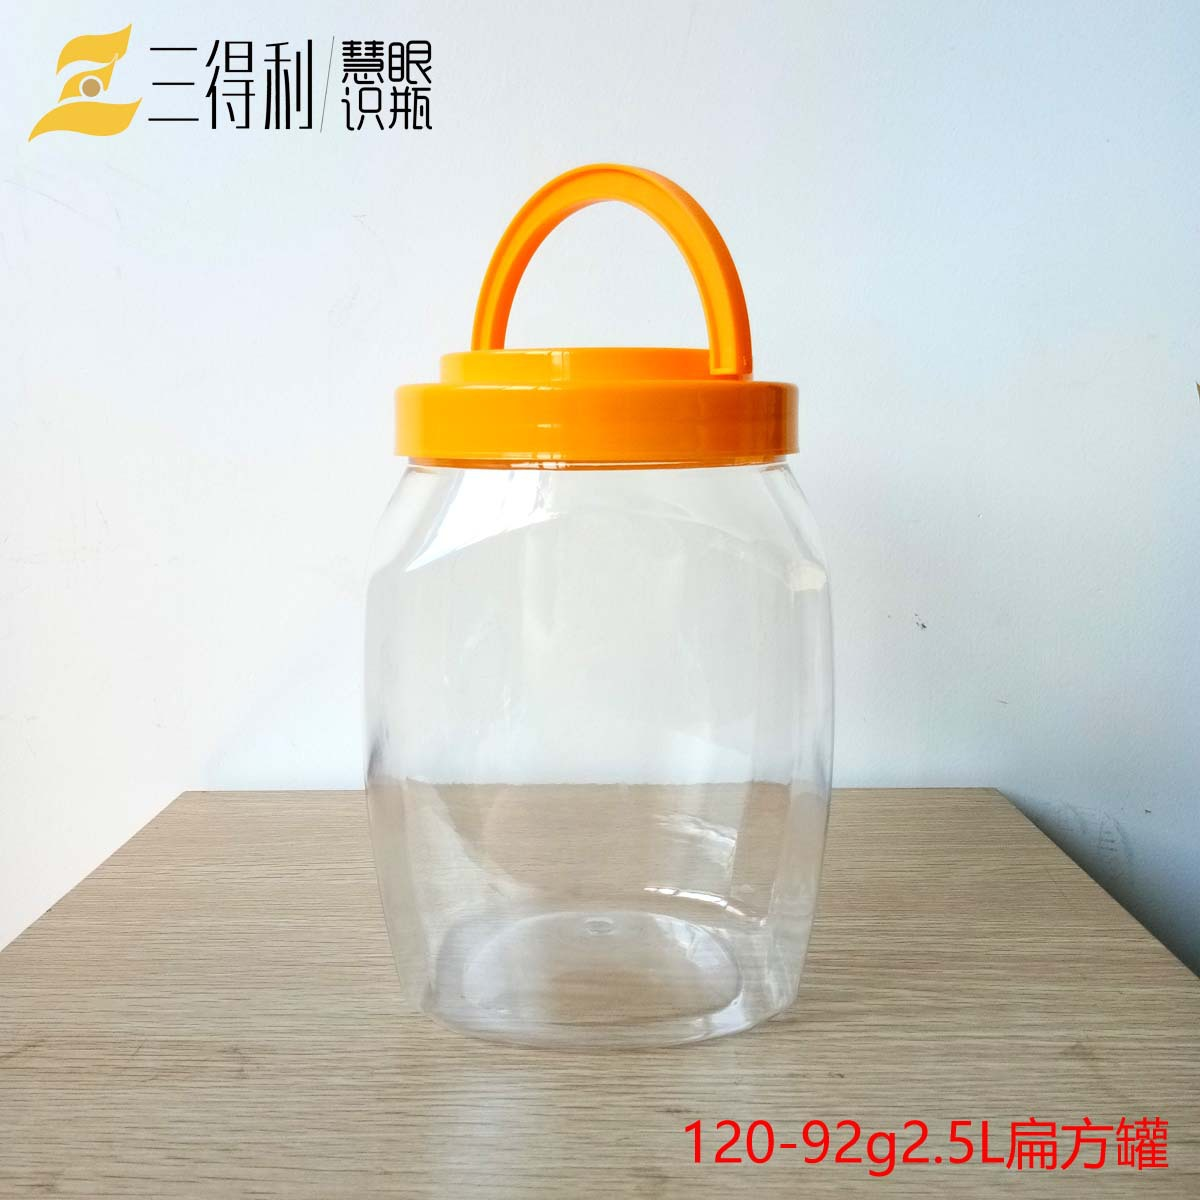 2.5L<font color=red>透明</font>麦片<font color=red>罐</font> 7斤塑料蜂蜜瓶 <font color=red>糖果</font>燕麦片食品储物<font color=red>罐</font>塑料提手<font color=red>罐</font>